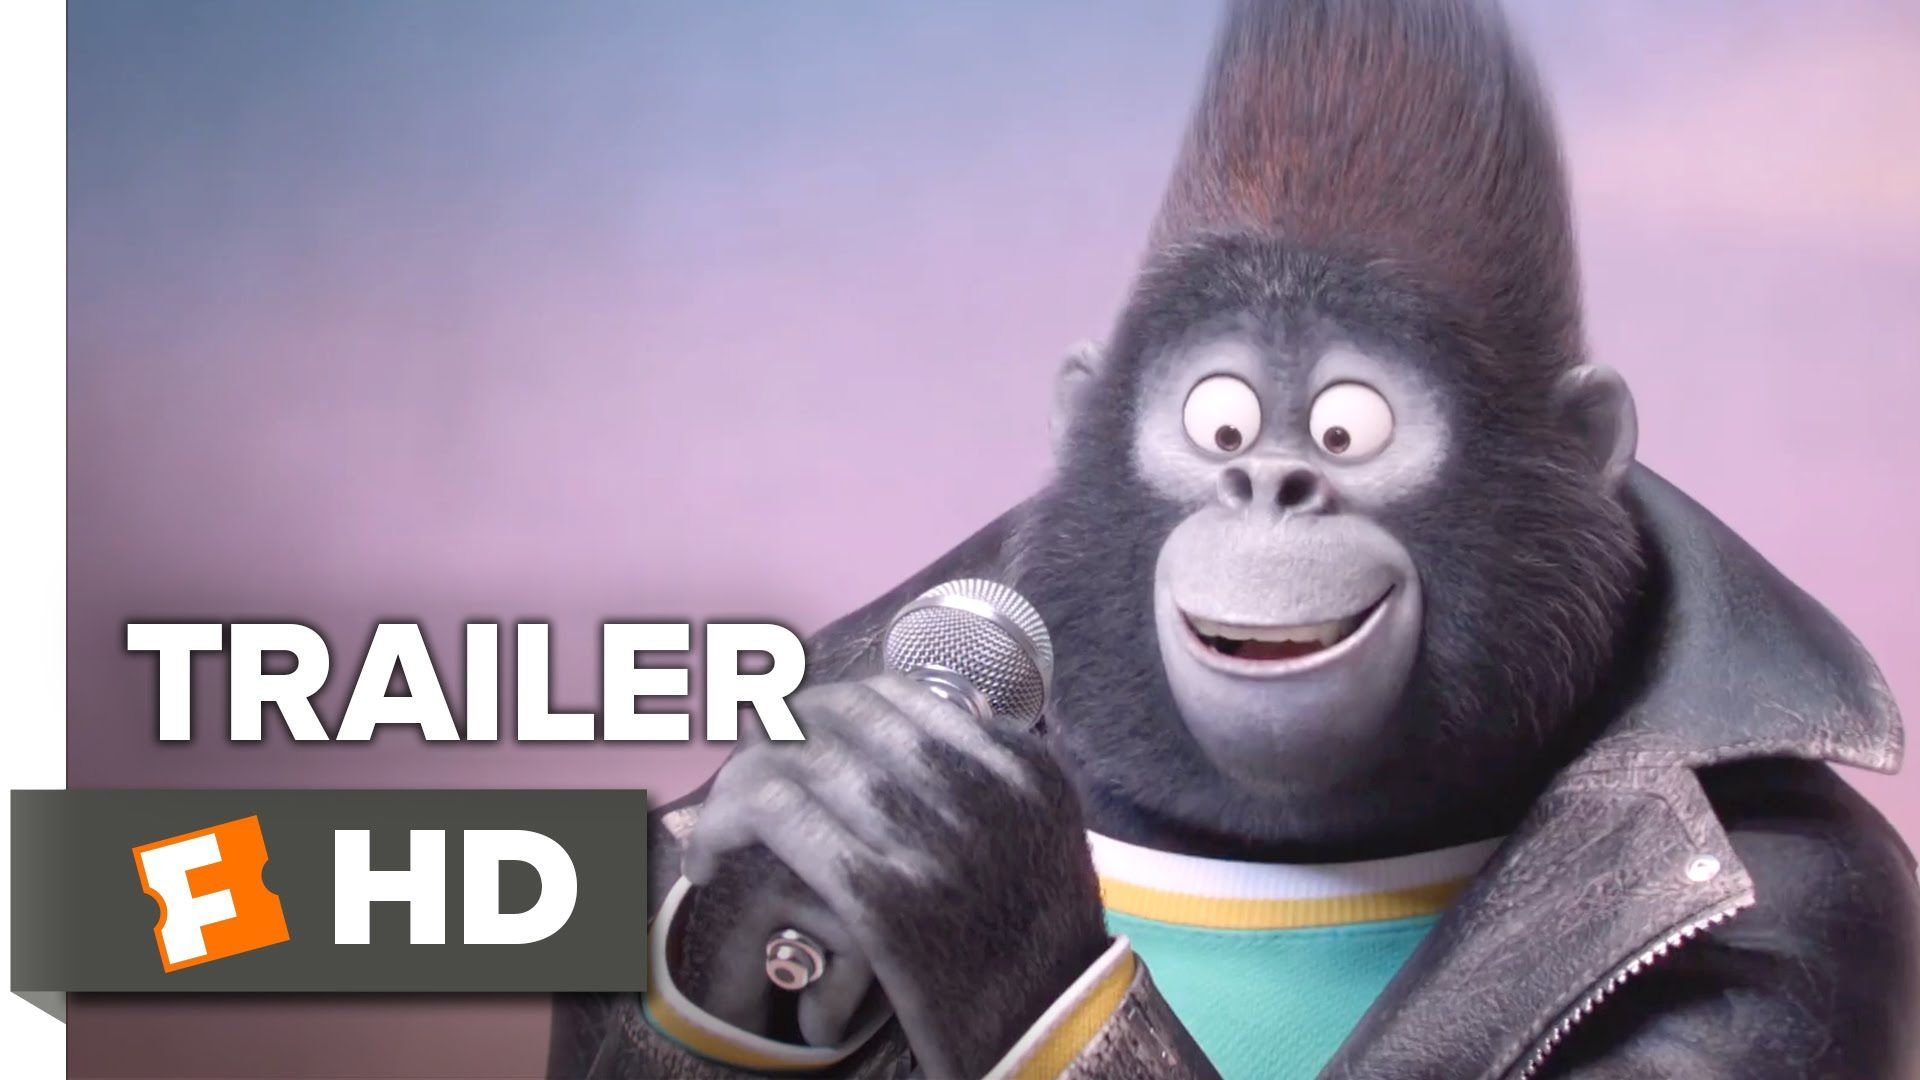 Anyone can be a star in the 1st sing trailer from the